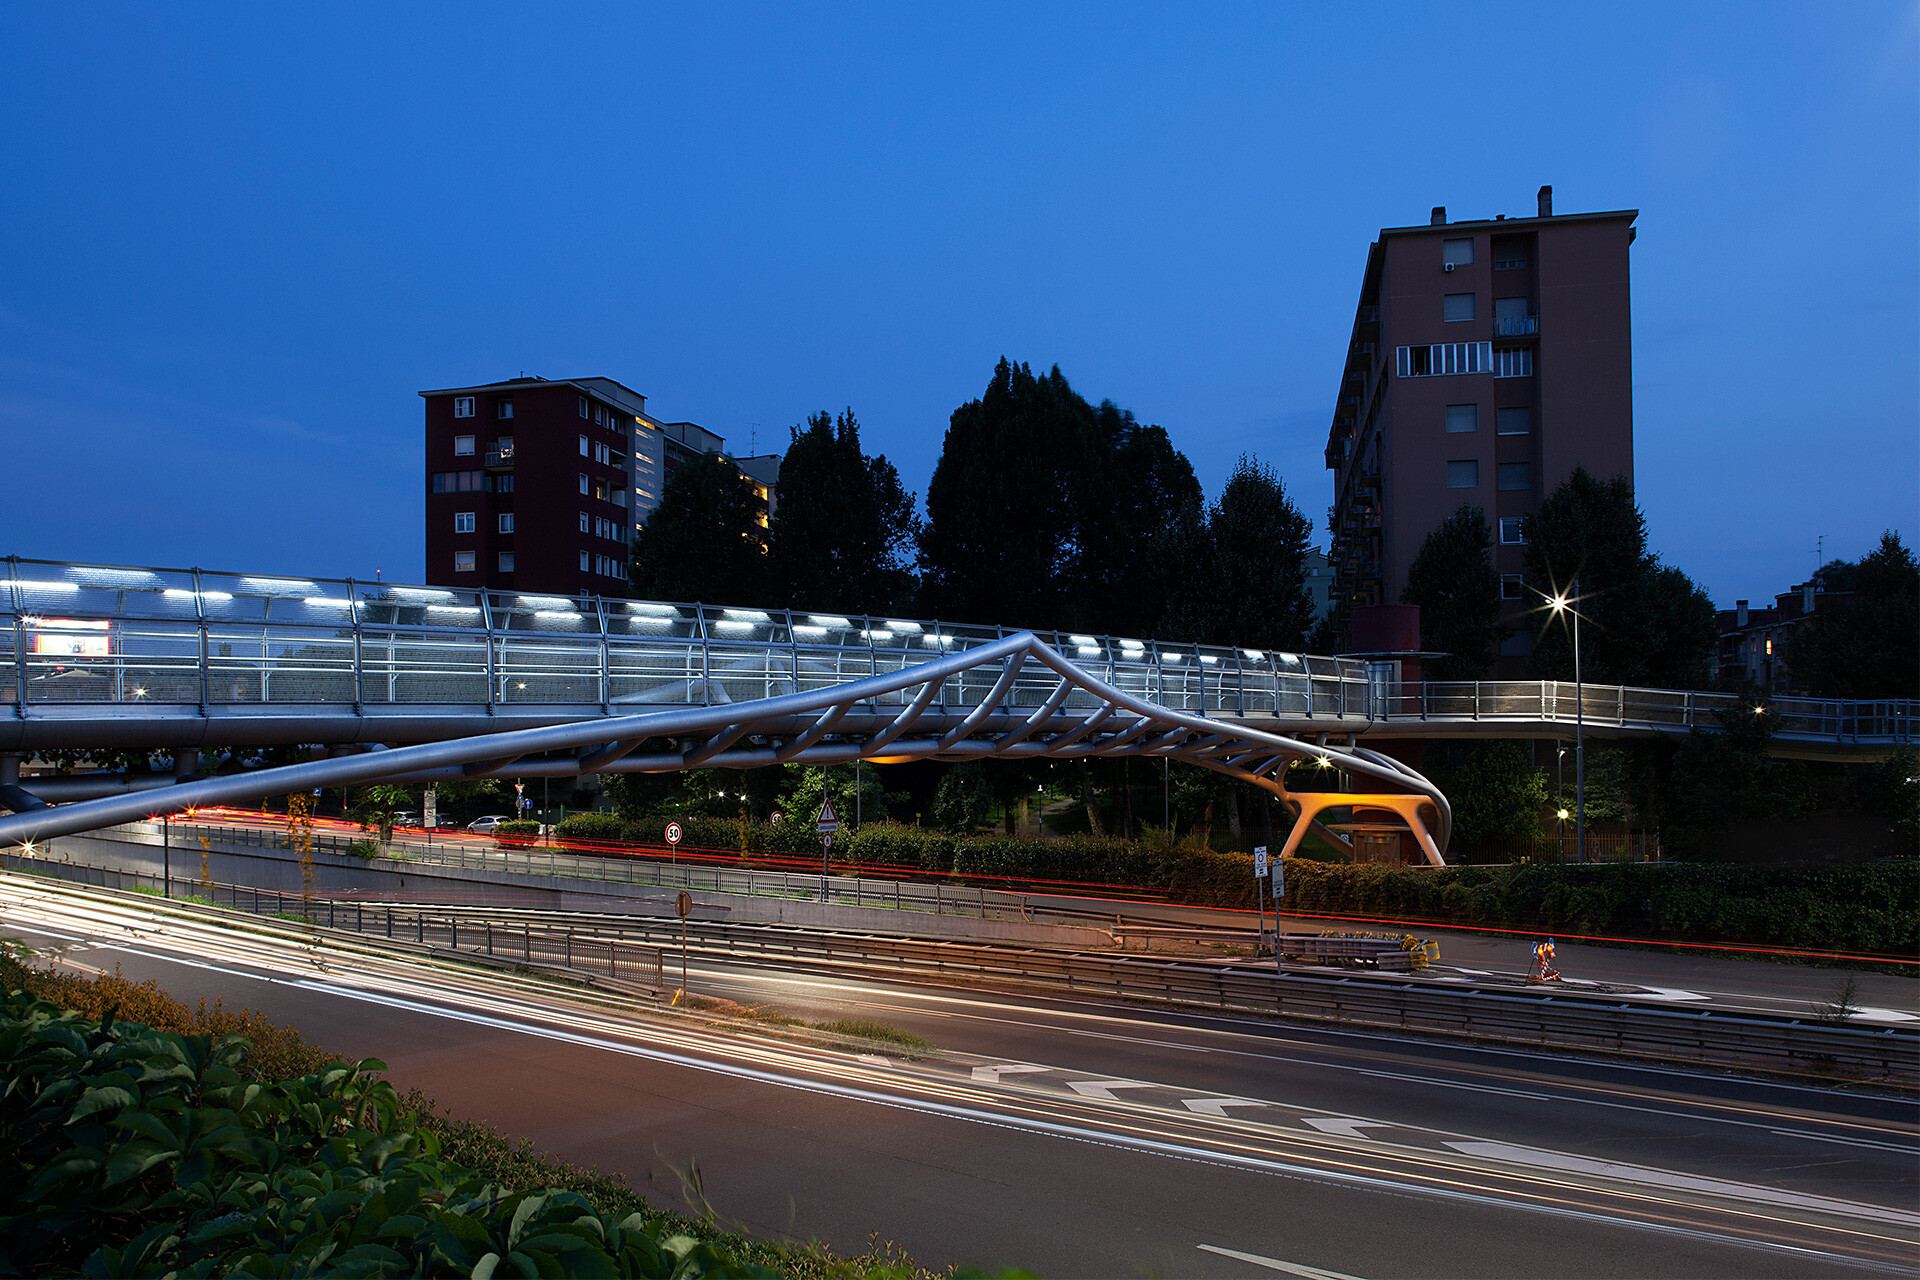 PEDESTRIAN BRIDGE VIA DE GASPERI - PORTELLO 6